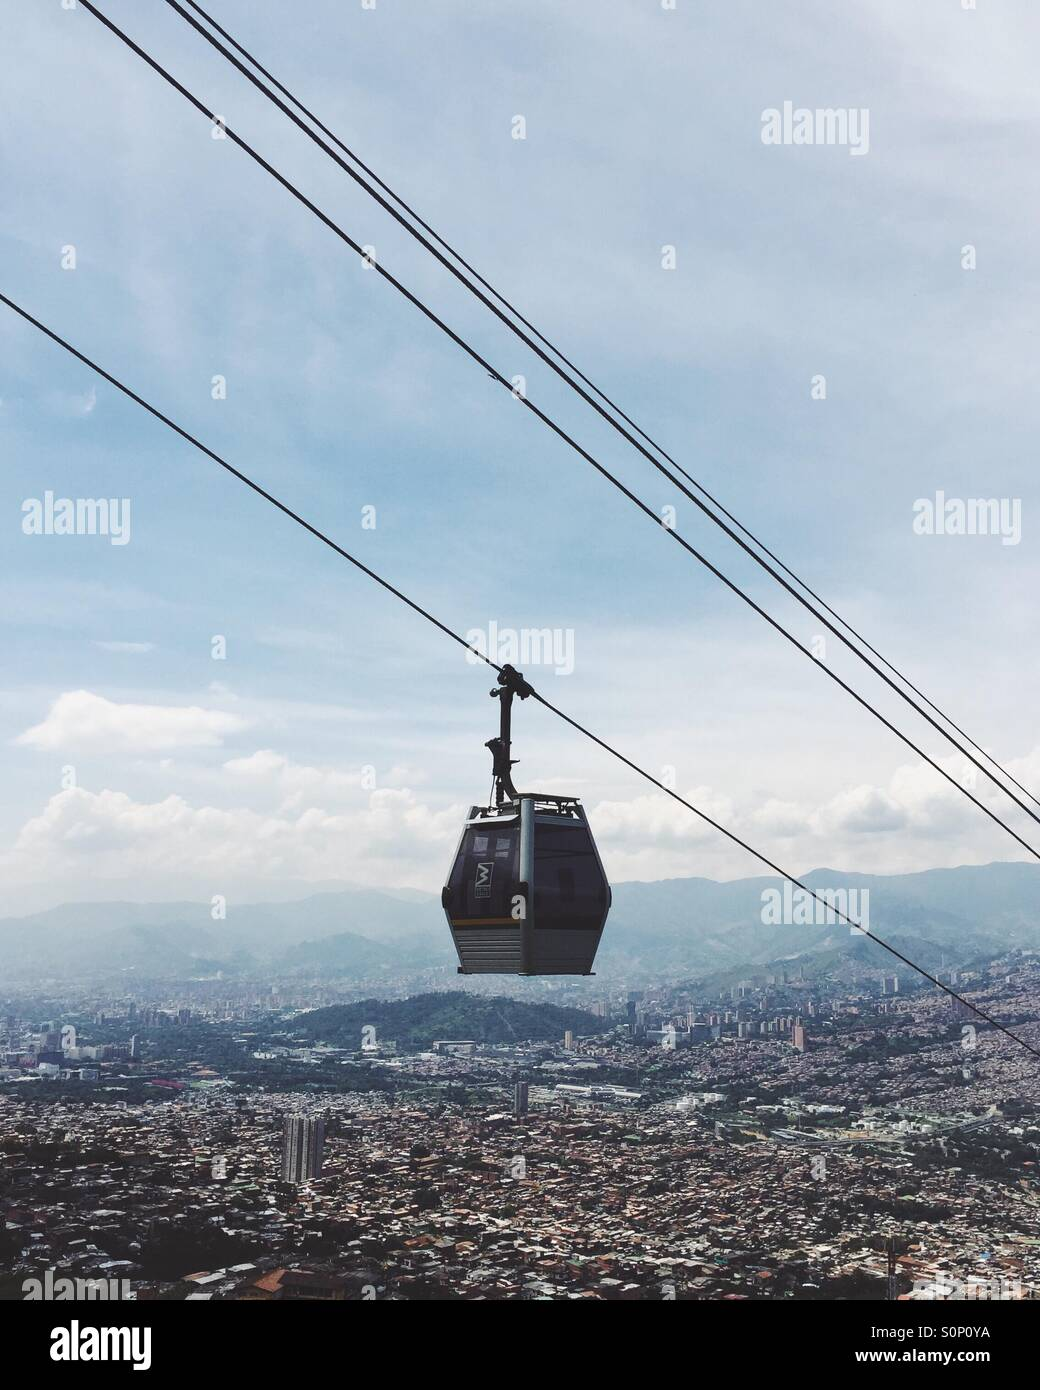 Medellín Colombia Stock Photo